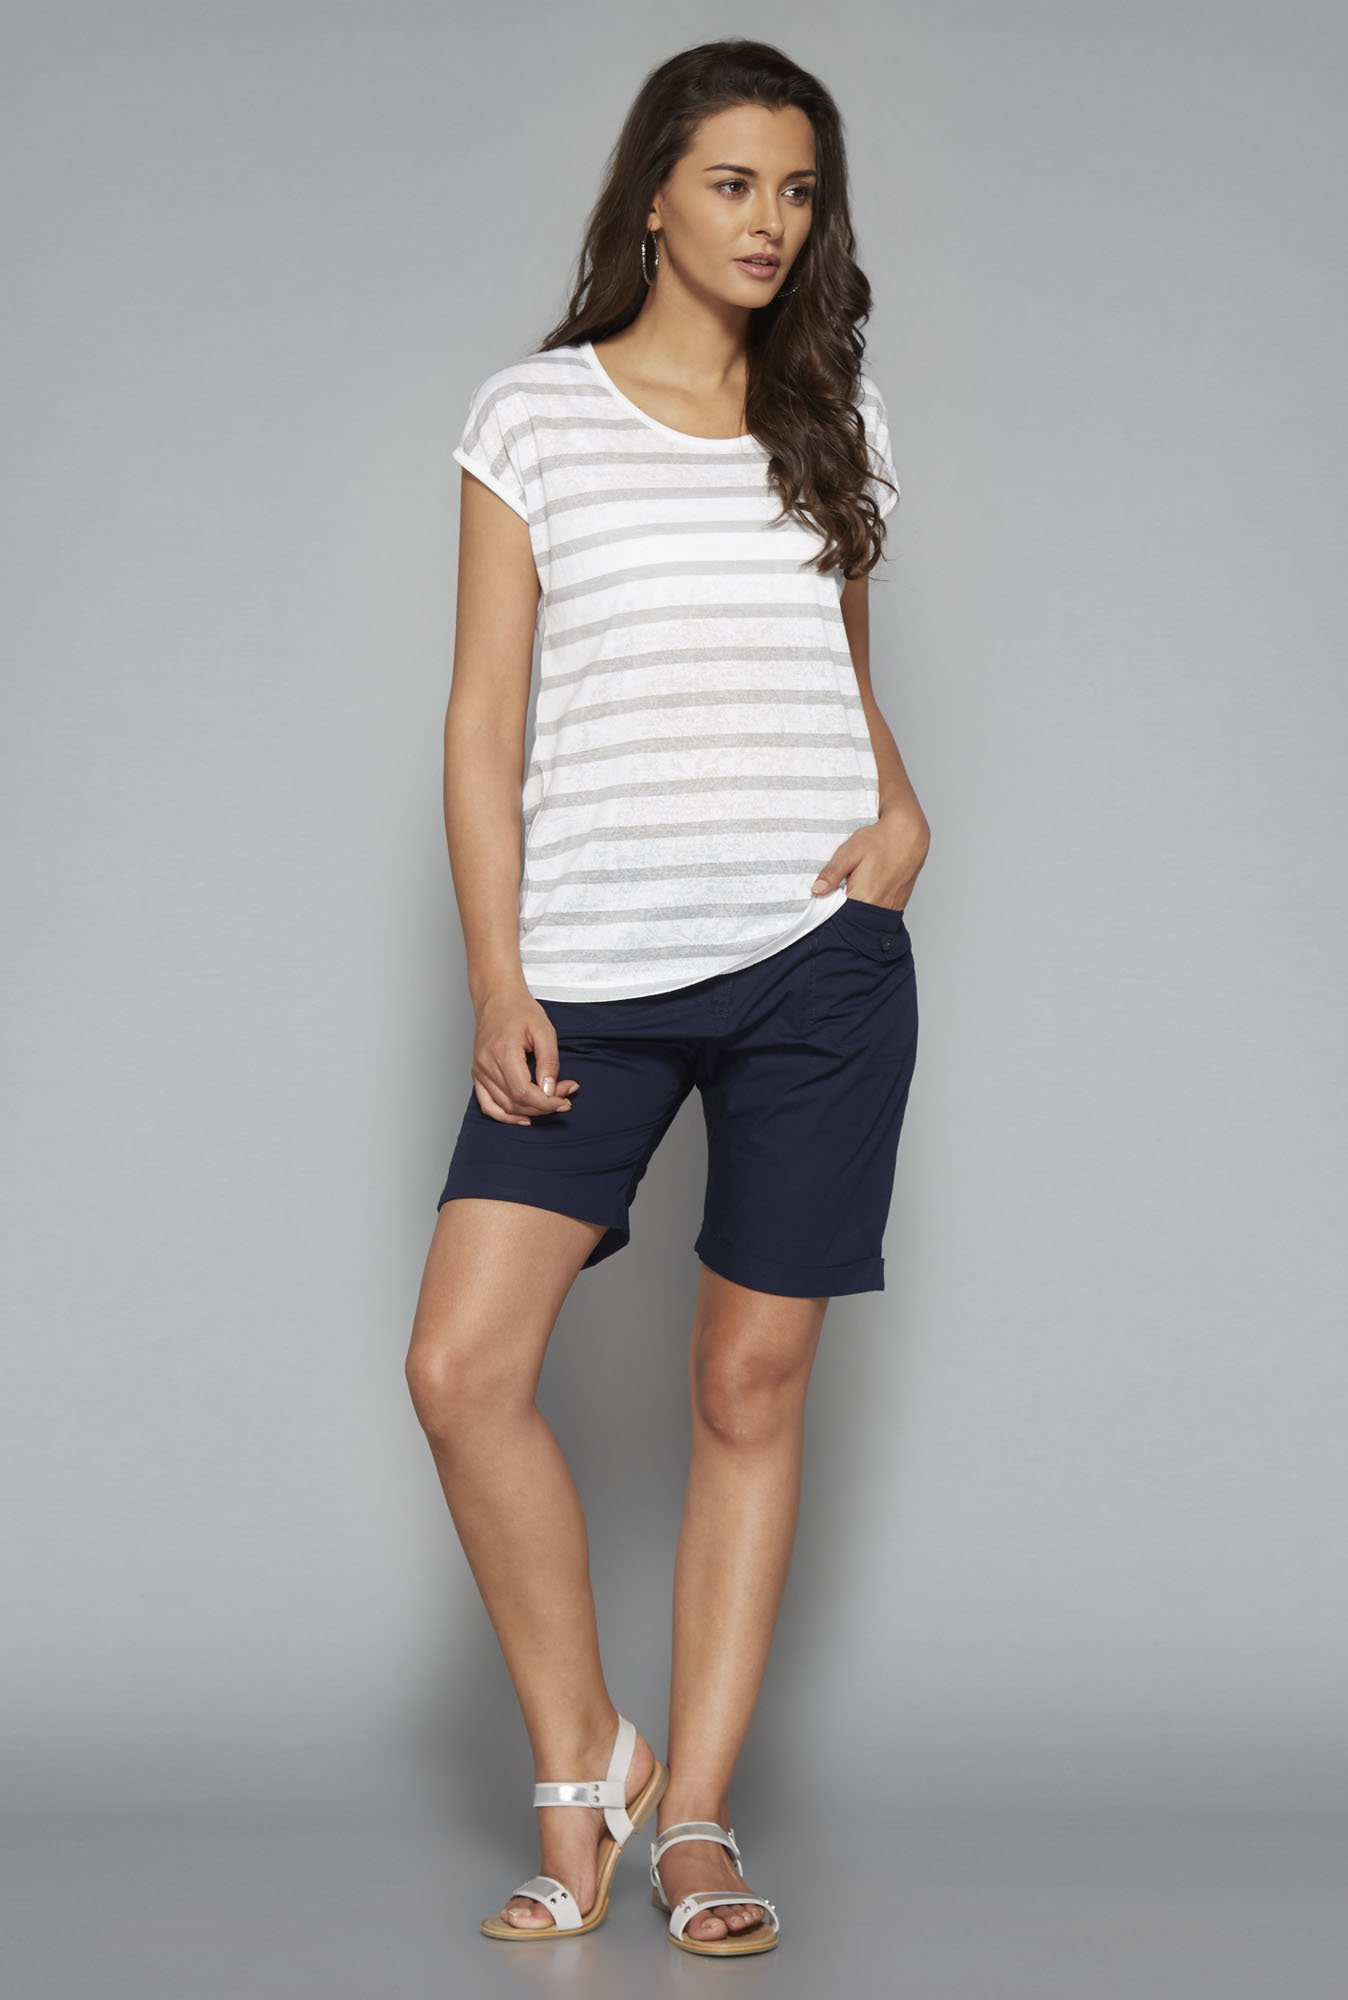 LOV White Striped Round Neck T Shirt